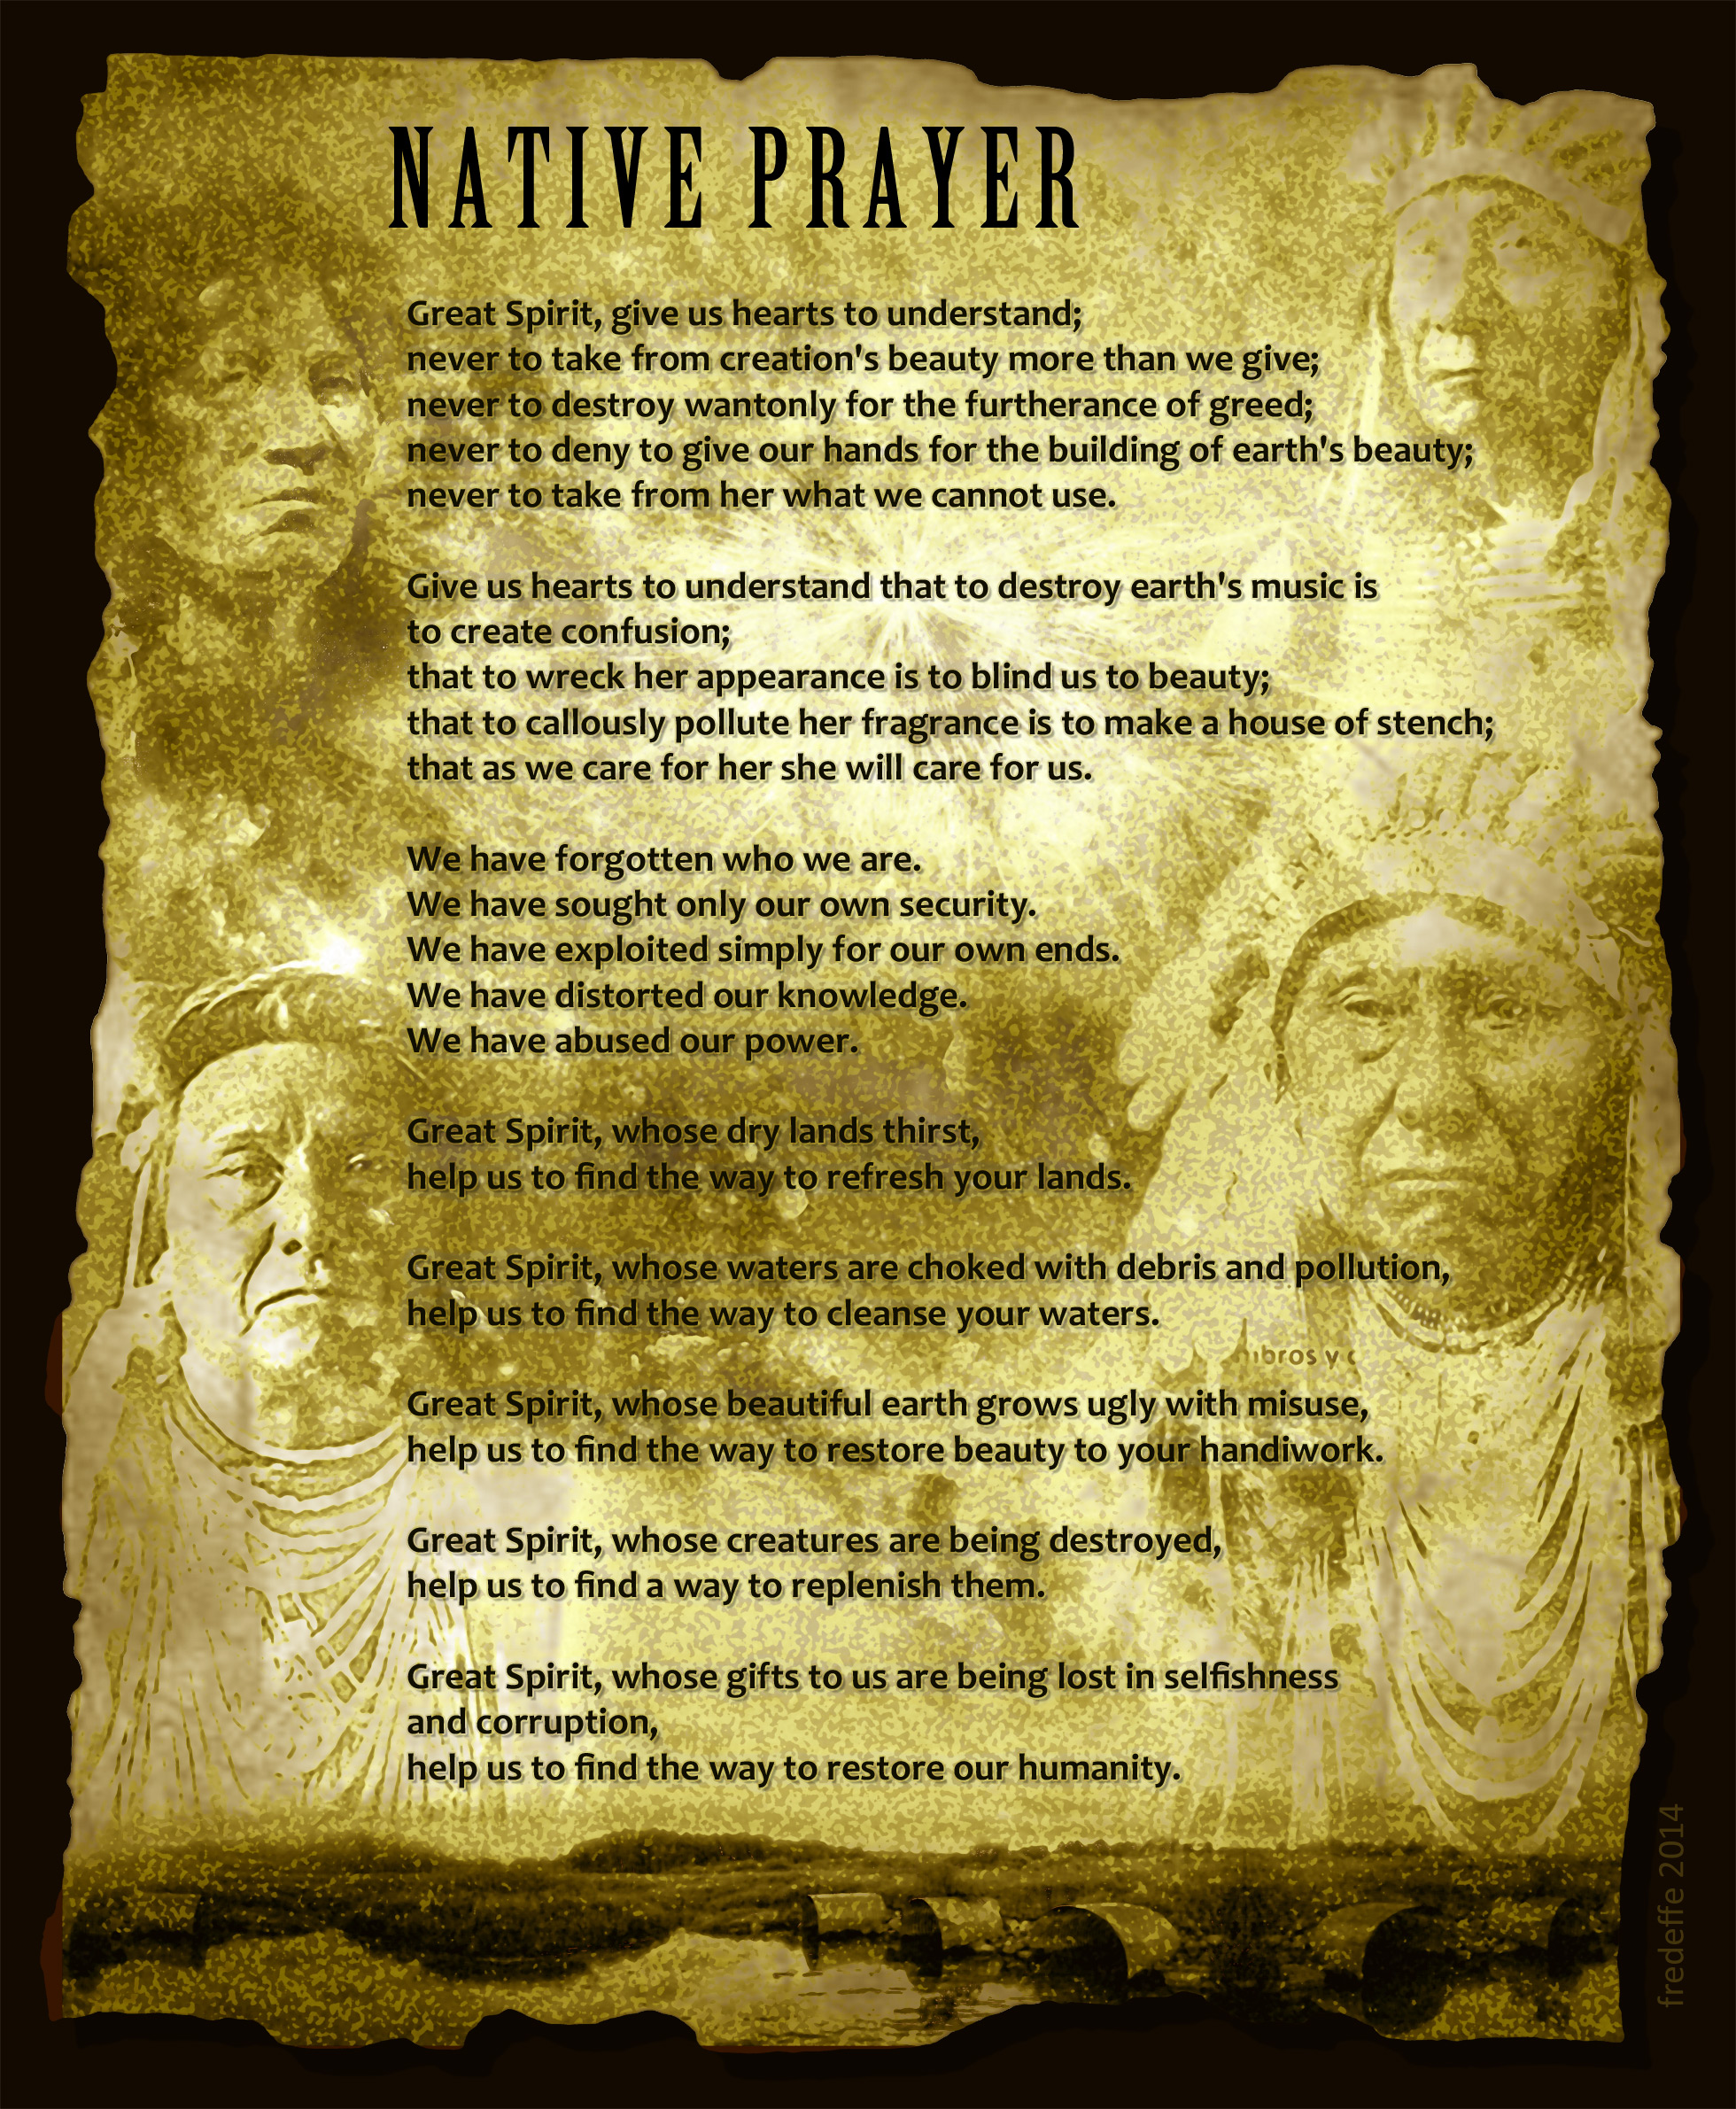 Native wisdom and prayer for the Great spirit and mother